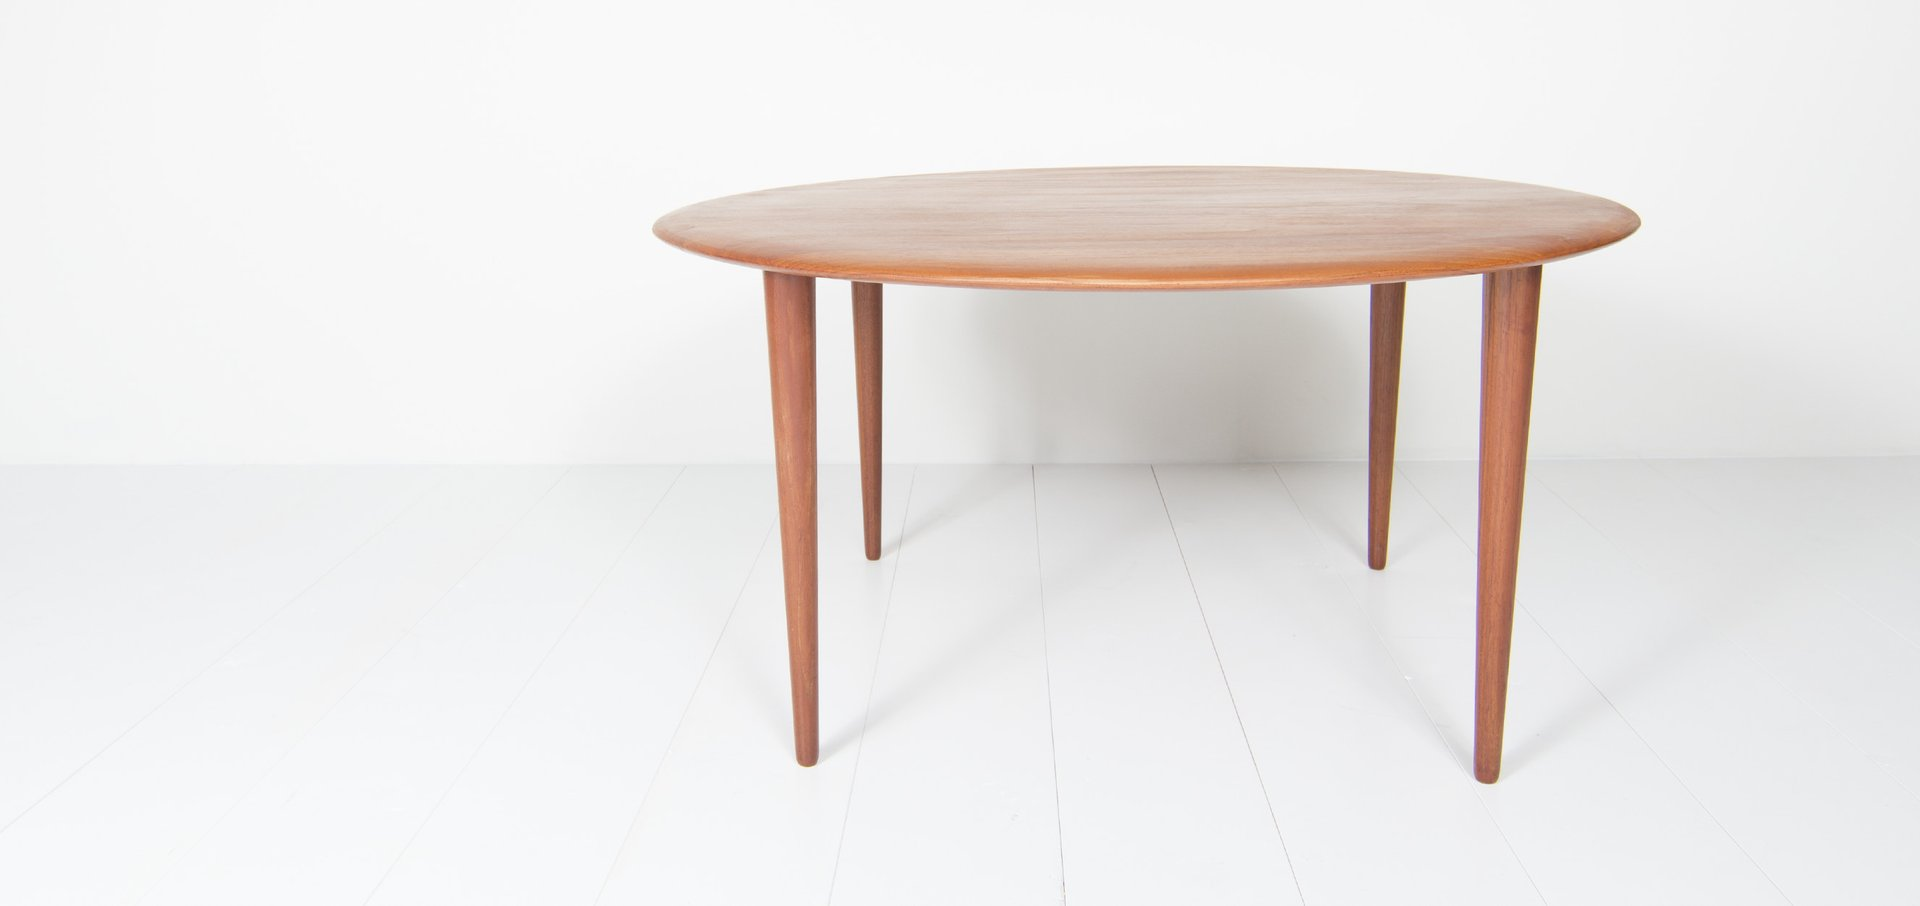 Danish Coffee Table By Peter Hvidt Orla M Lgaard Nielsen For France S N 1950s For Sale At